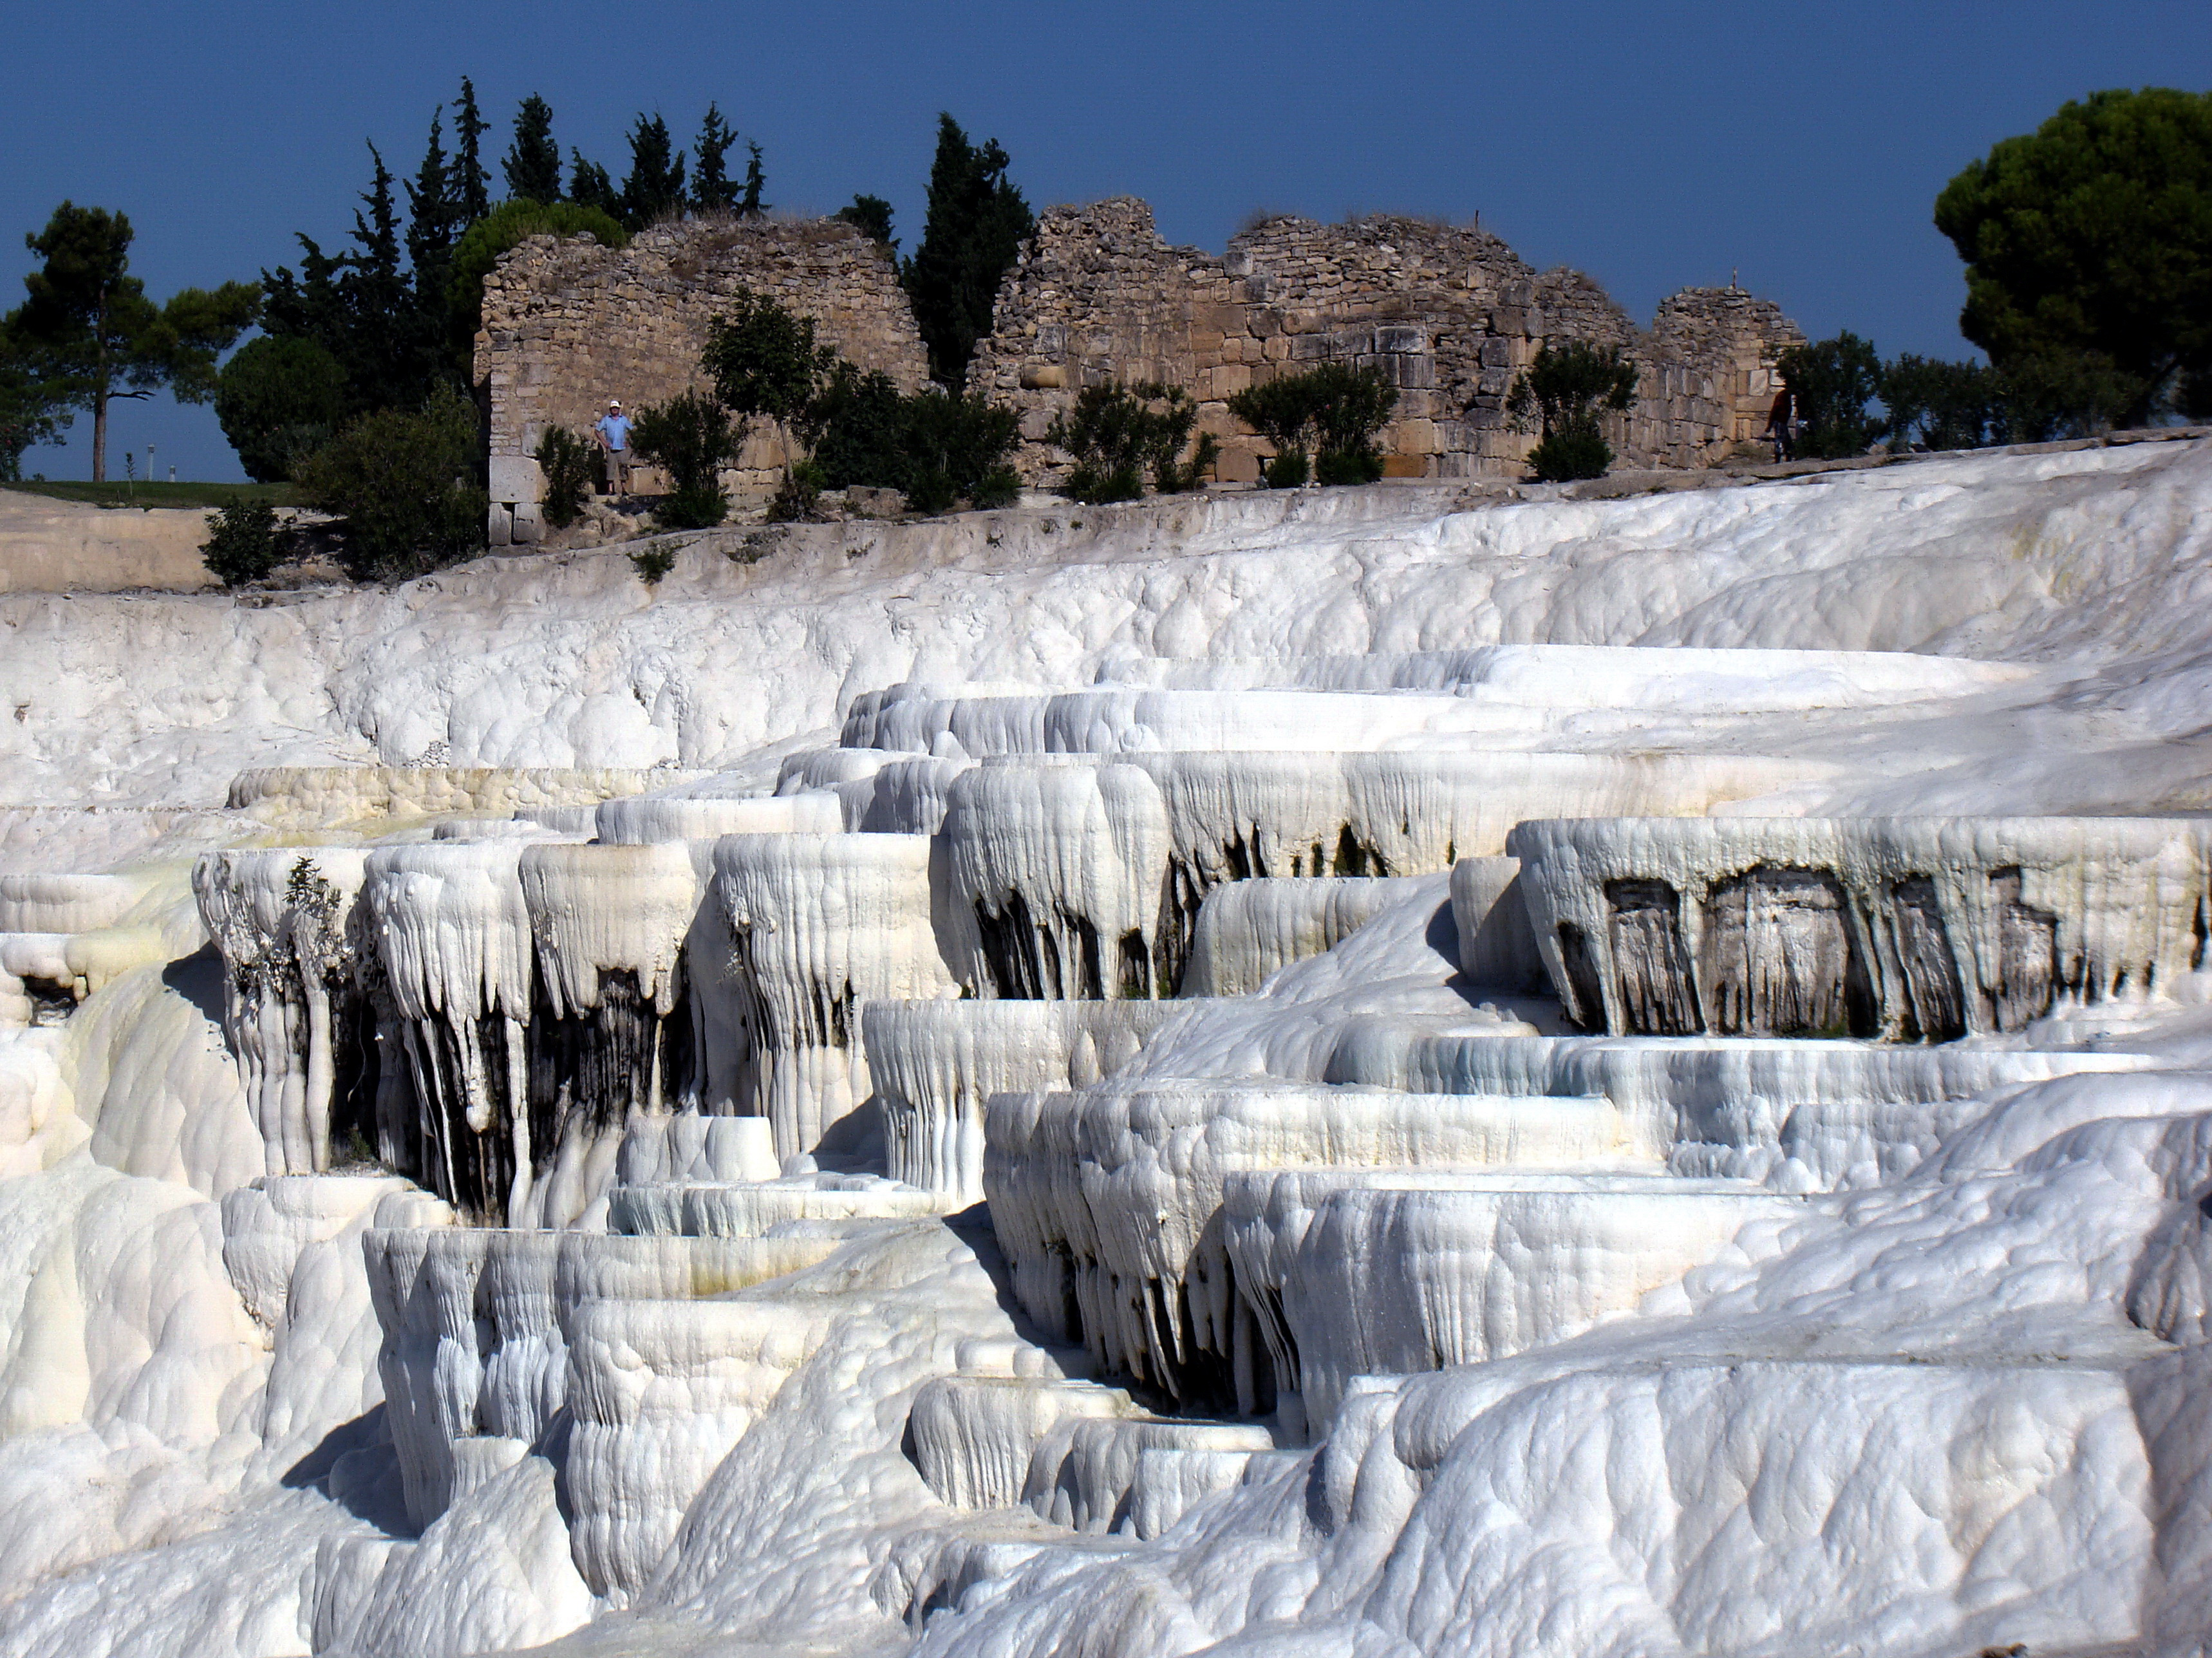 File:Pamukkale (Hierapolis) Turkey.jpg - Wikimedia Commons